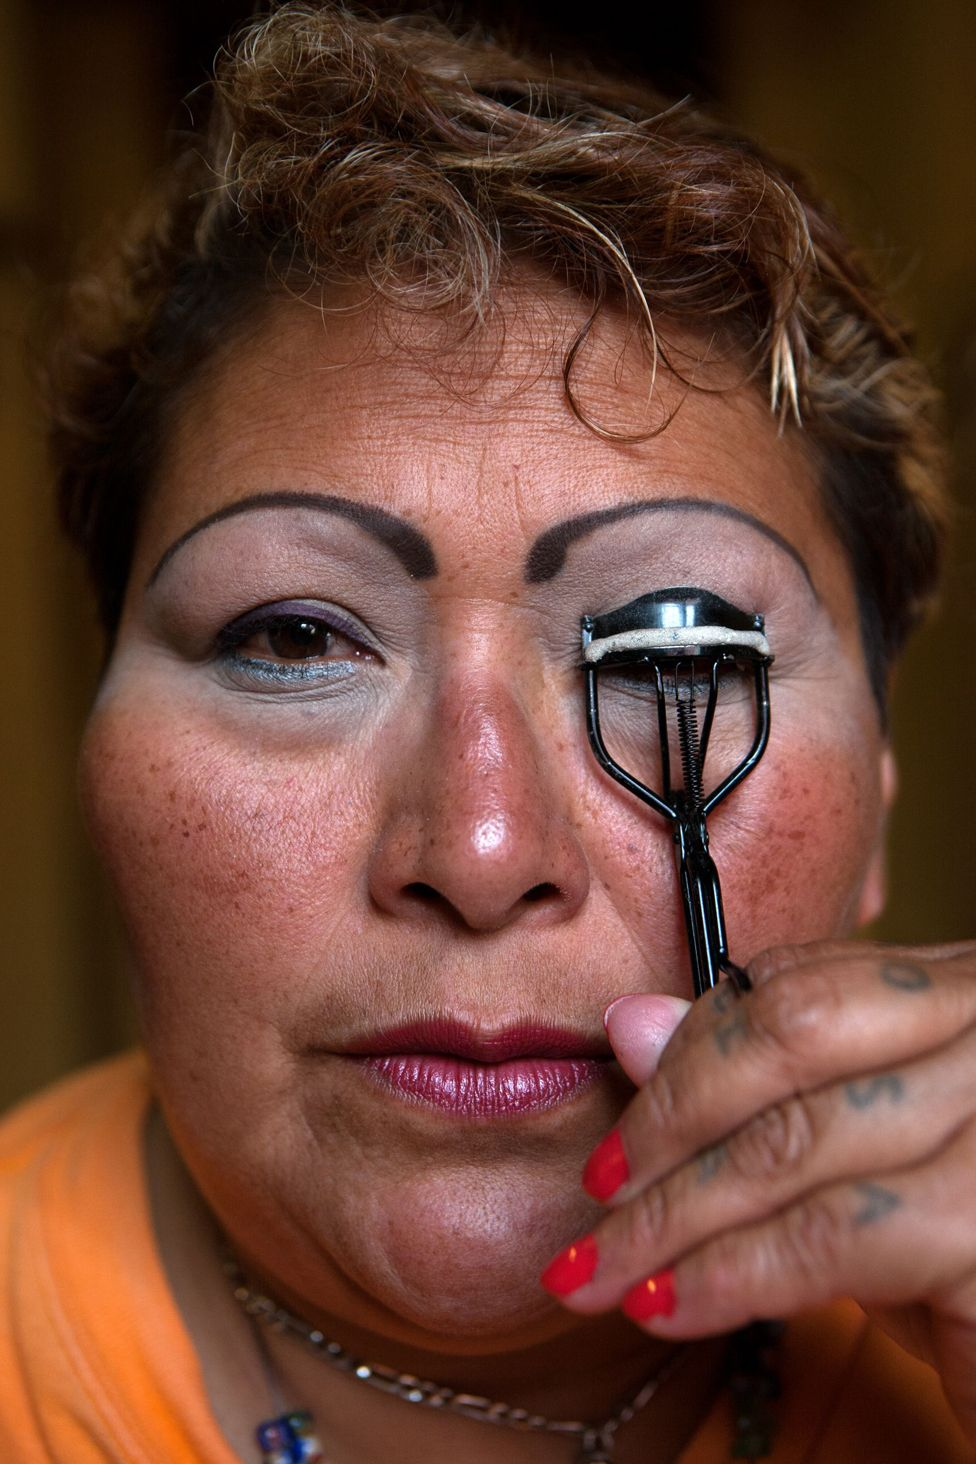 Paola, a resident at Casa Xochiquetzal, puts on make-up before going to work